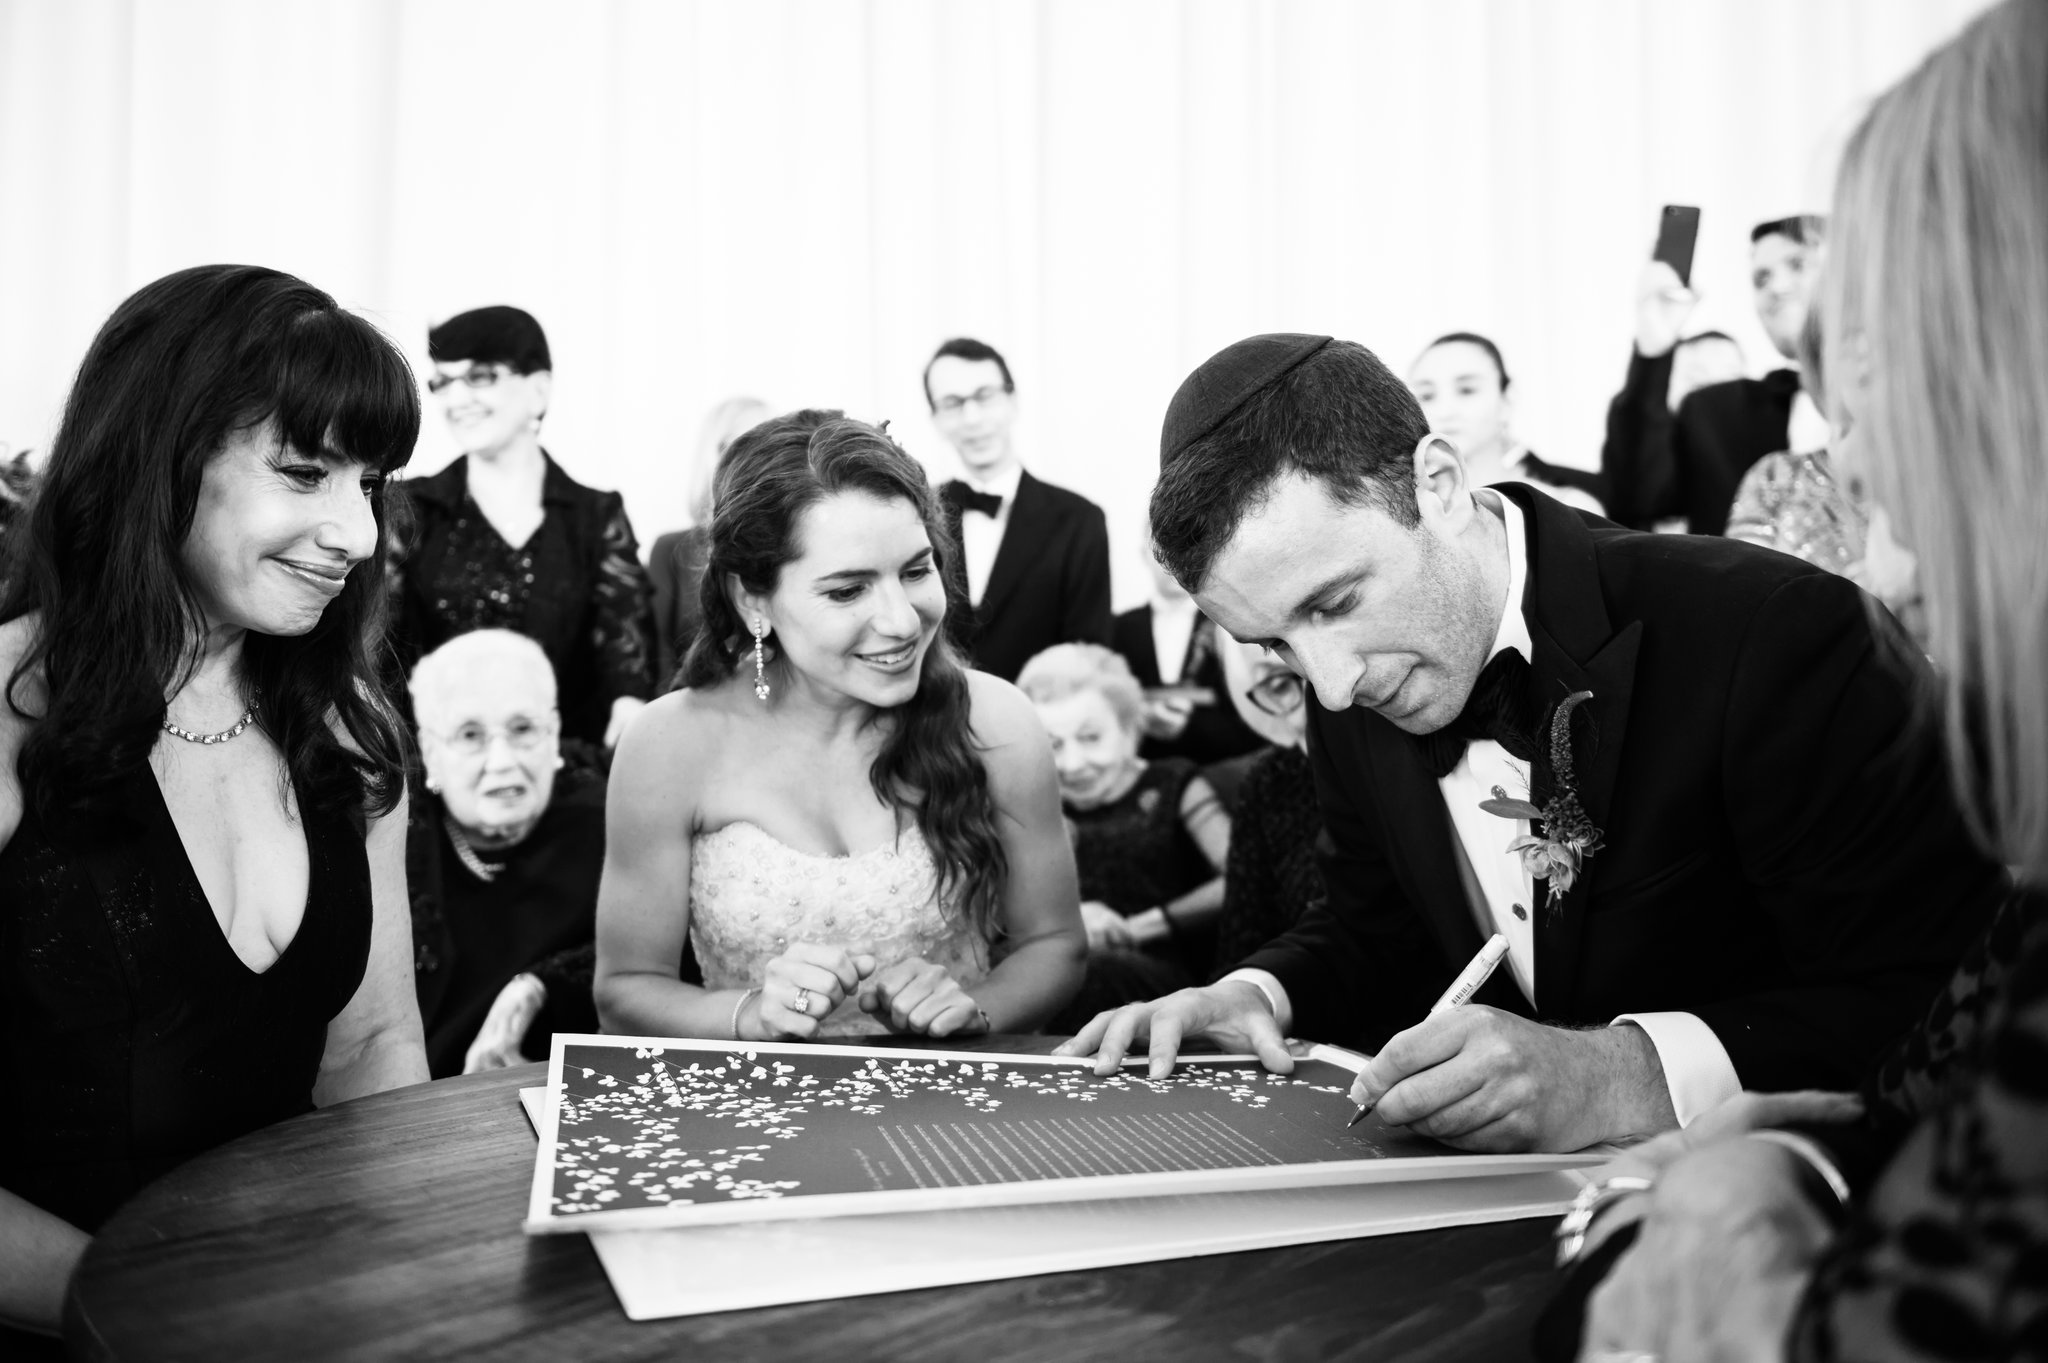 This is such a great documentary photo of the Ketubah signing at Northerly Island.